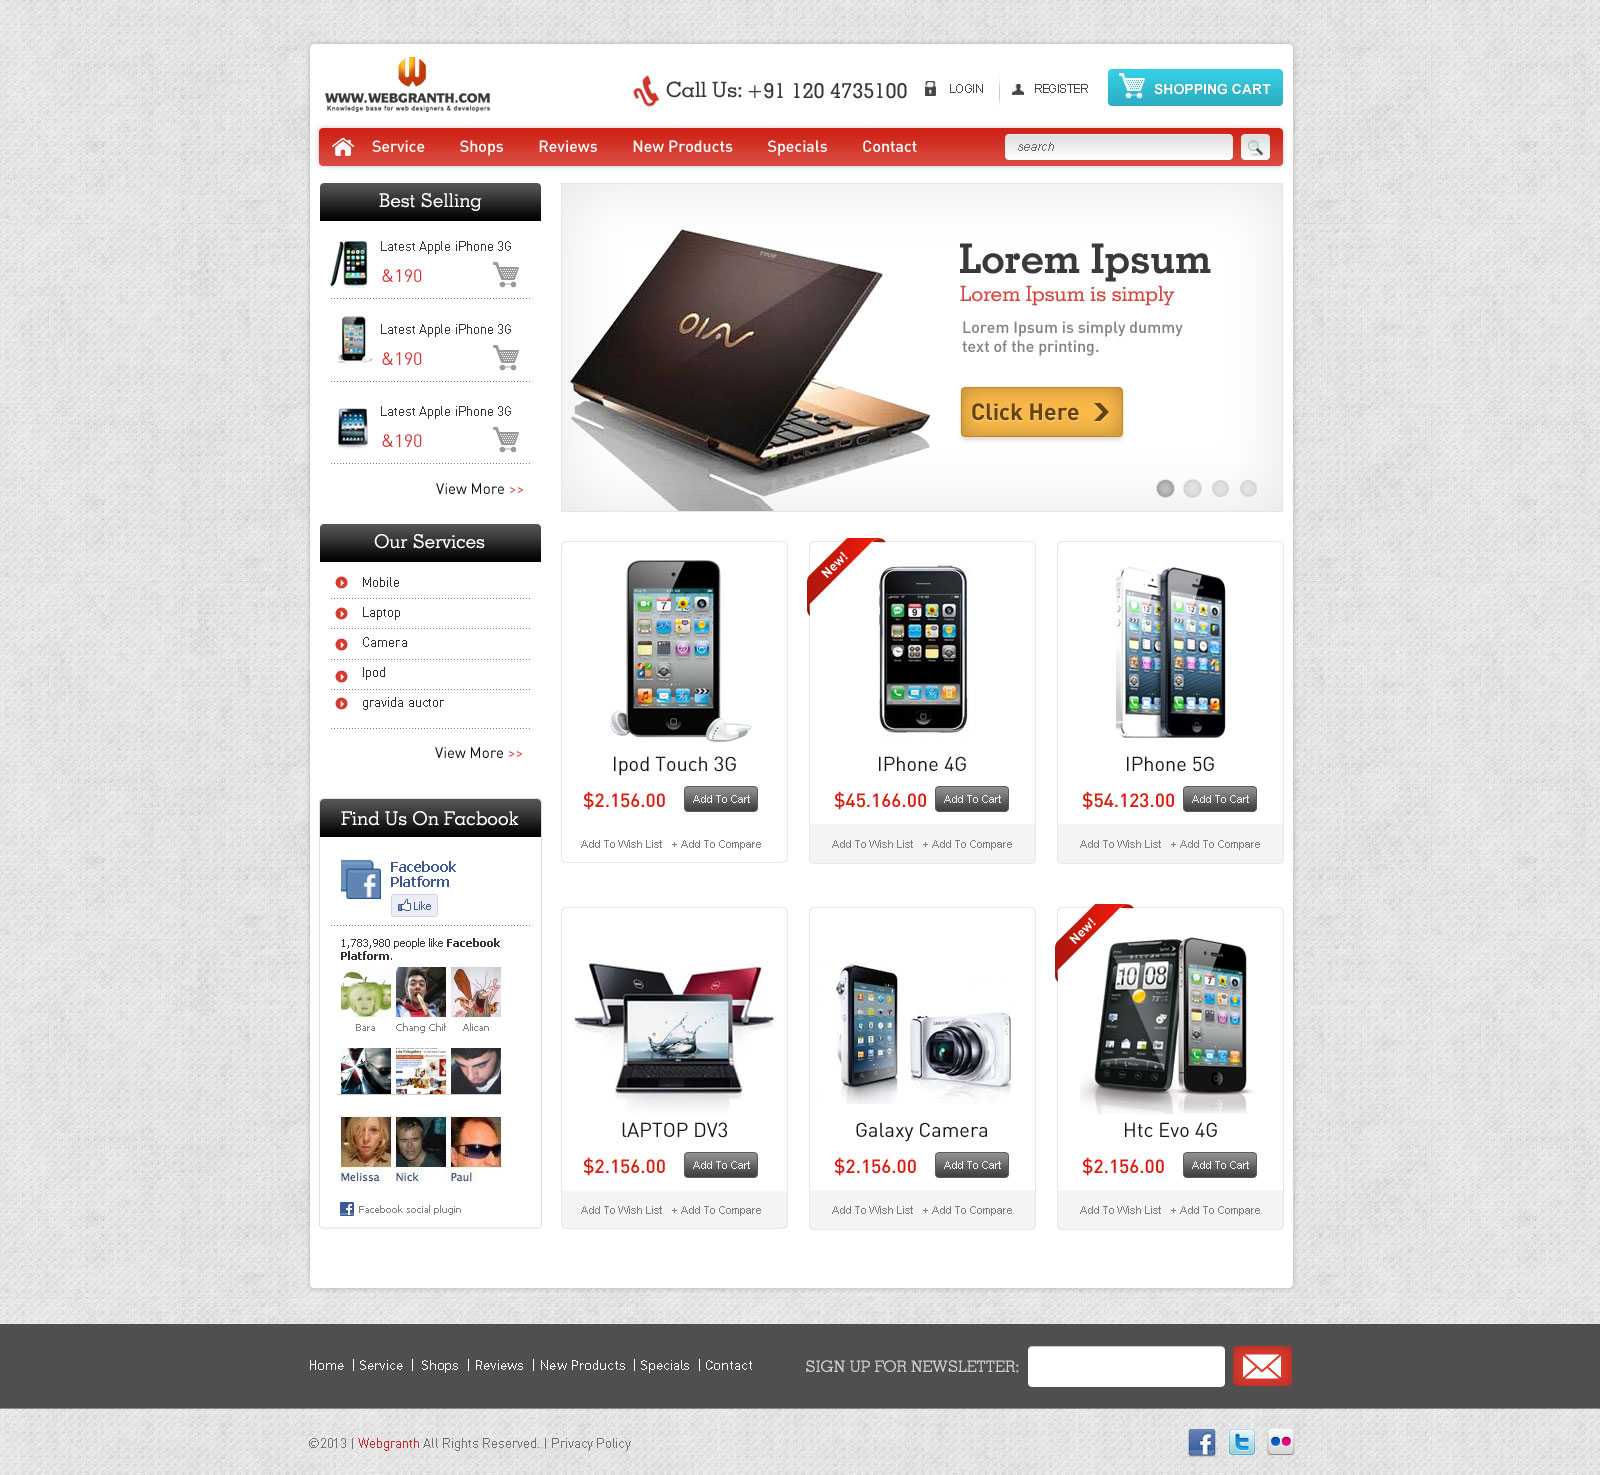 Top Result 50 Best Of Homepage Template Free Download Gallery 2017 ...